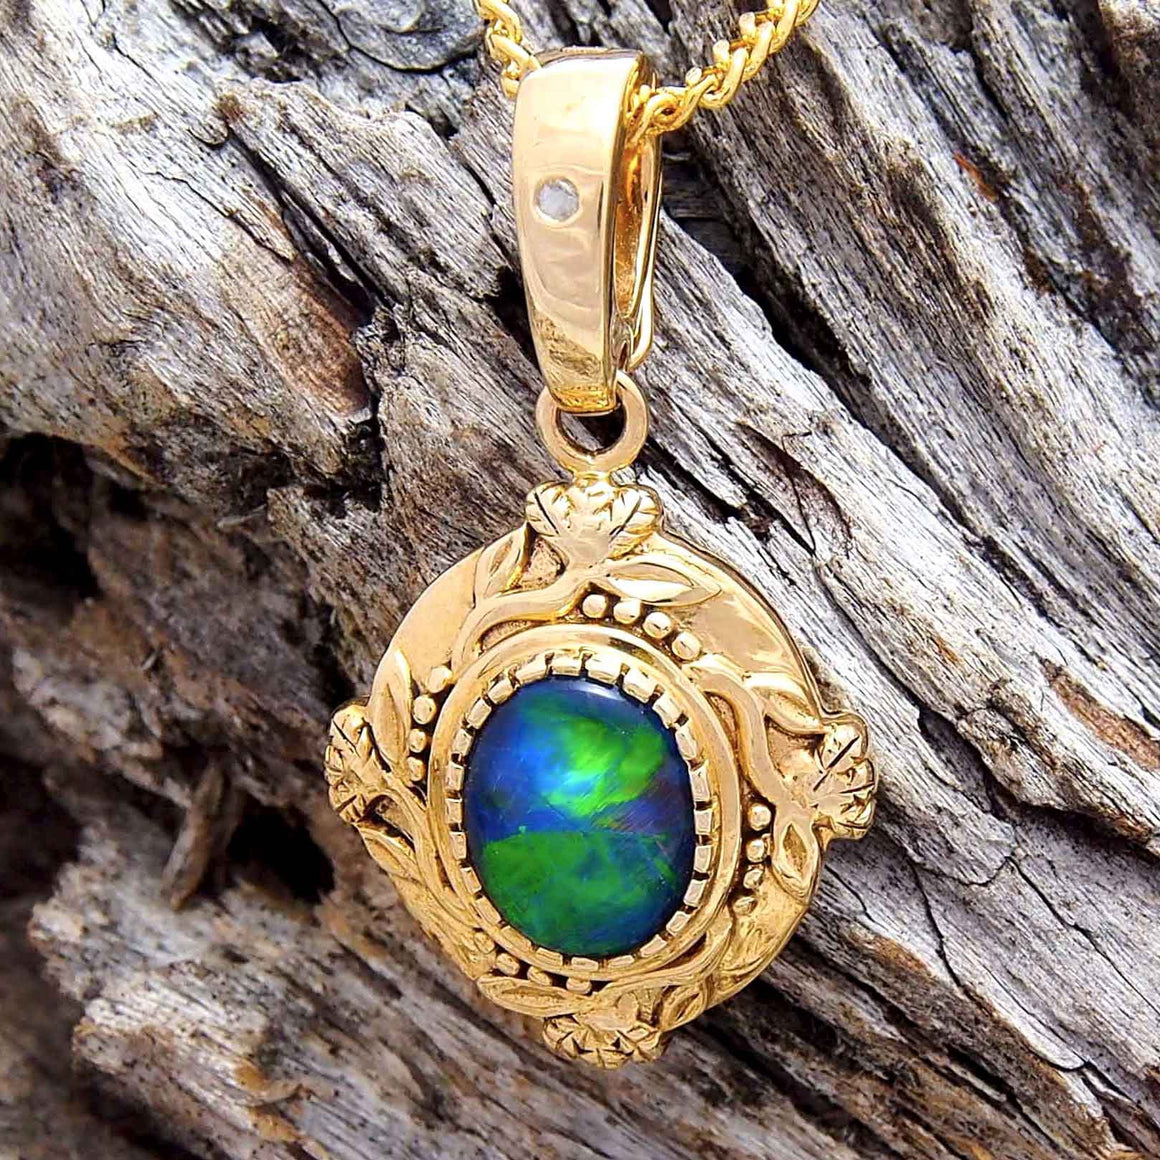 Intricate 9ct yellow gold floral design necklace pendant with pearl enhancer clasp, bezel set with a rich blue and green oval triplet opal and featuring a flush set white diamond